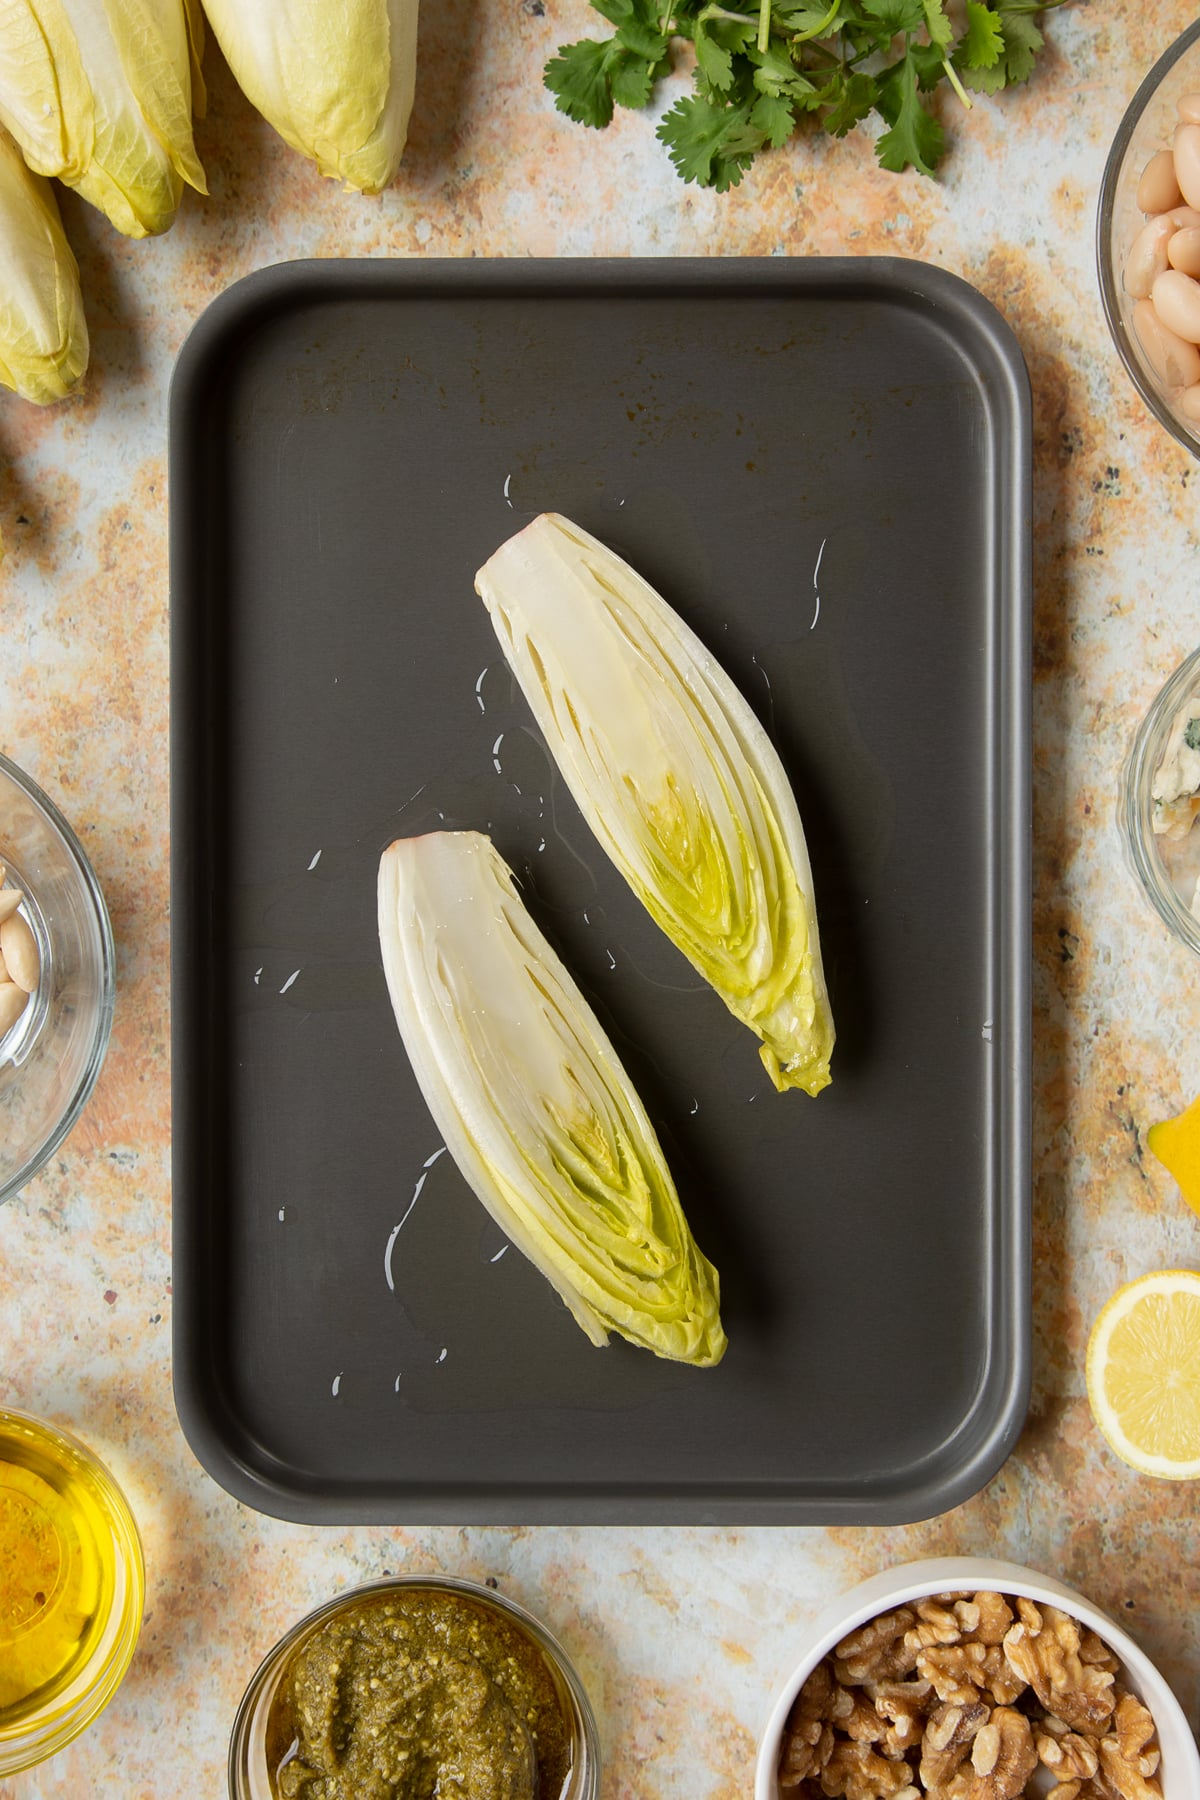 Oiled chicory on a tray.